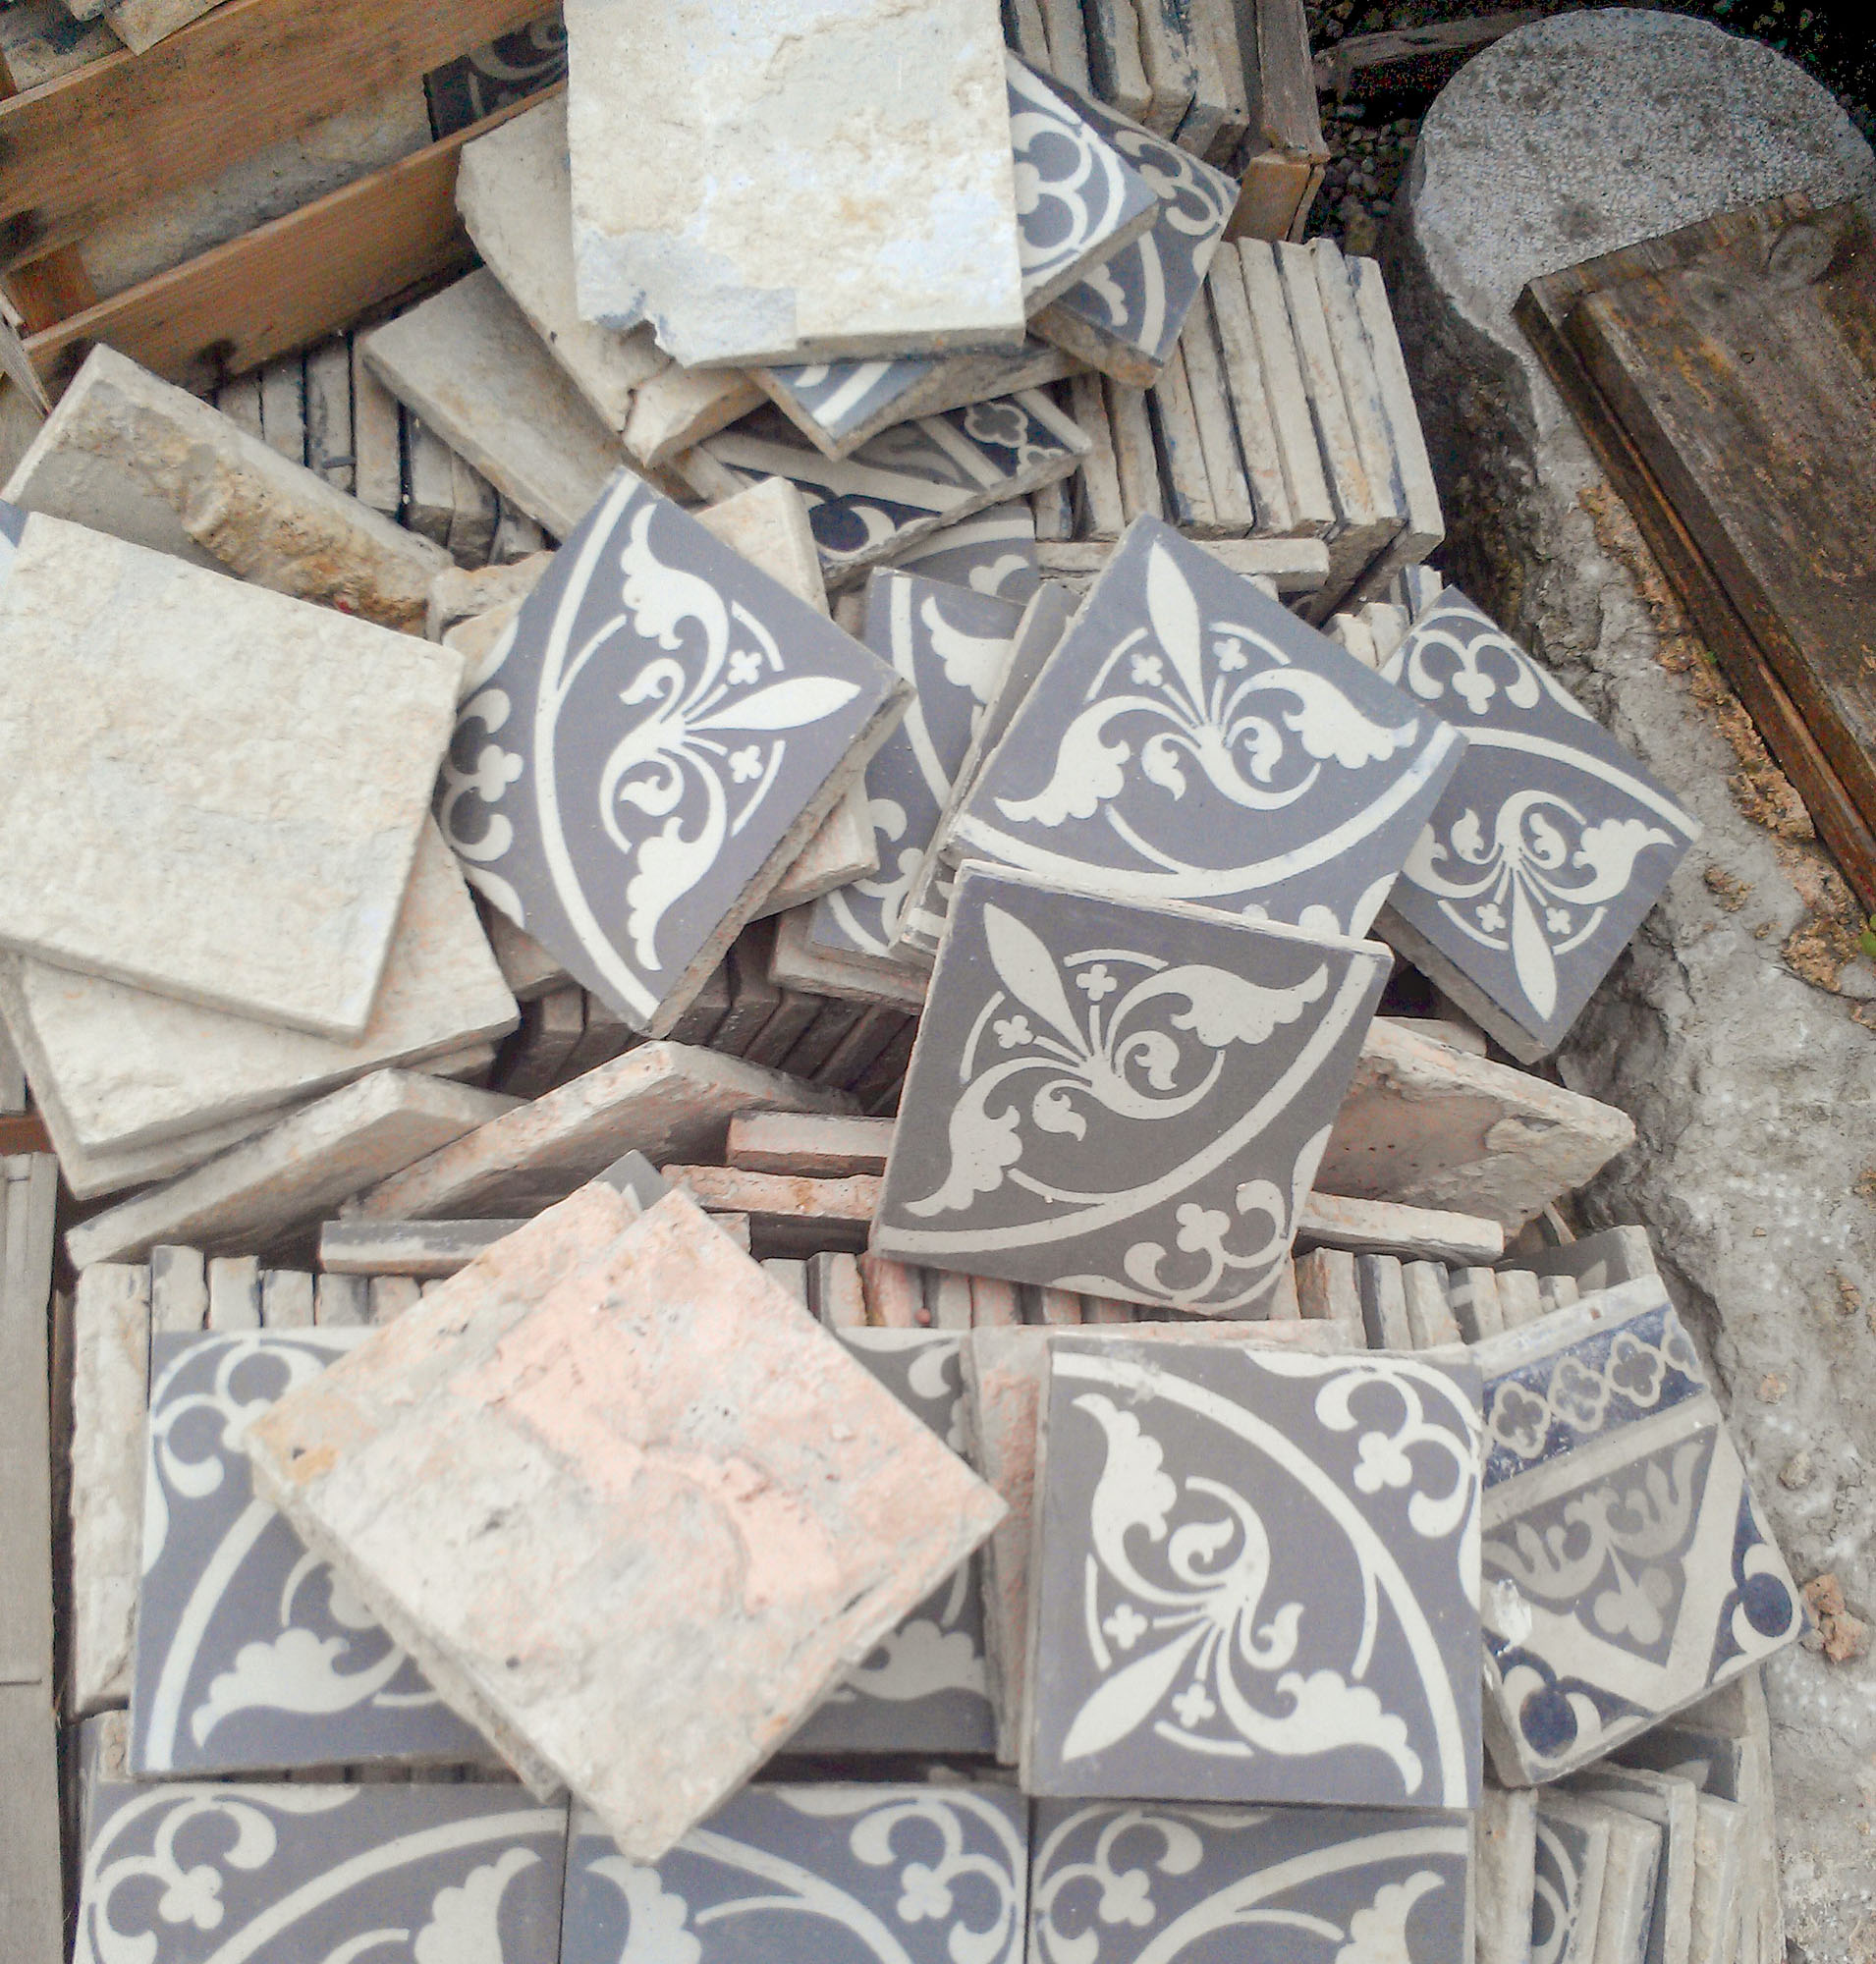 Reclaimed Victorian-era encaustic tiles await a new purpose.